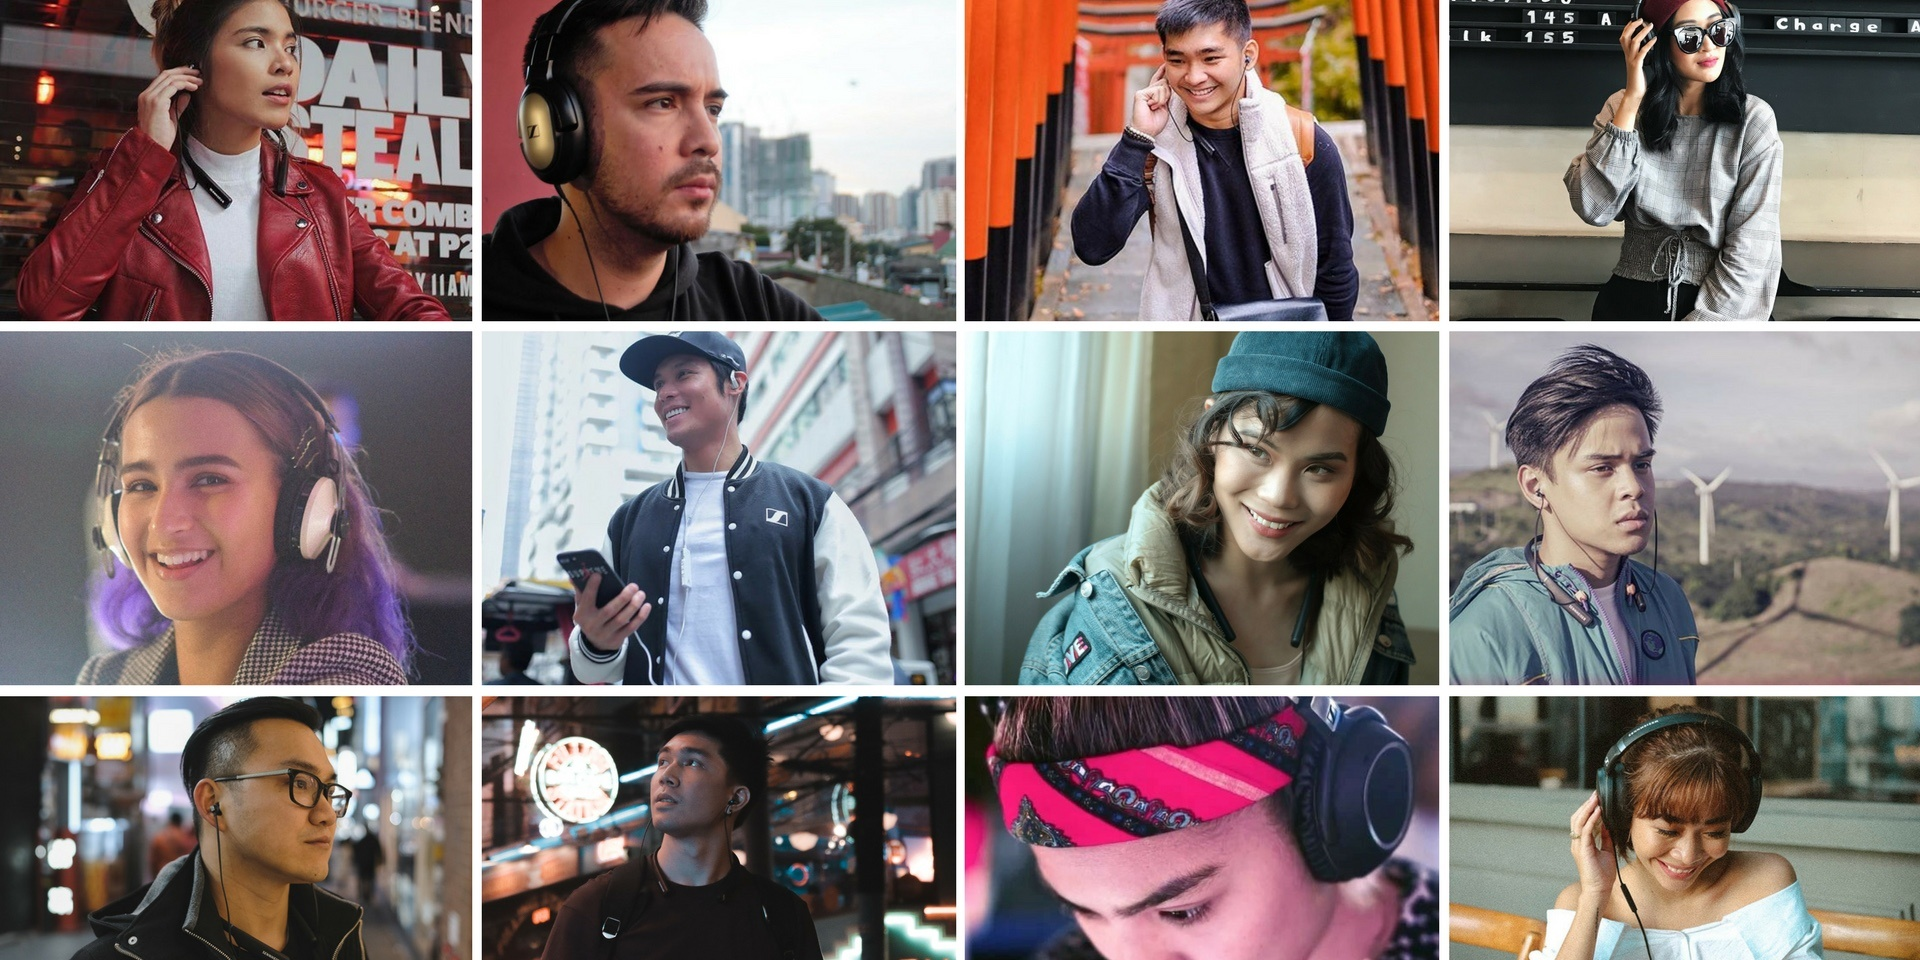 Experience music in Germany with the Sennheiser Sound Heroes - contest